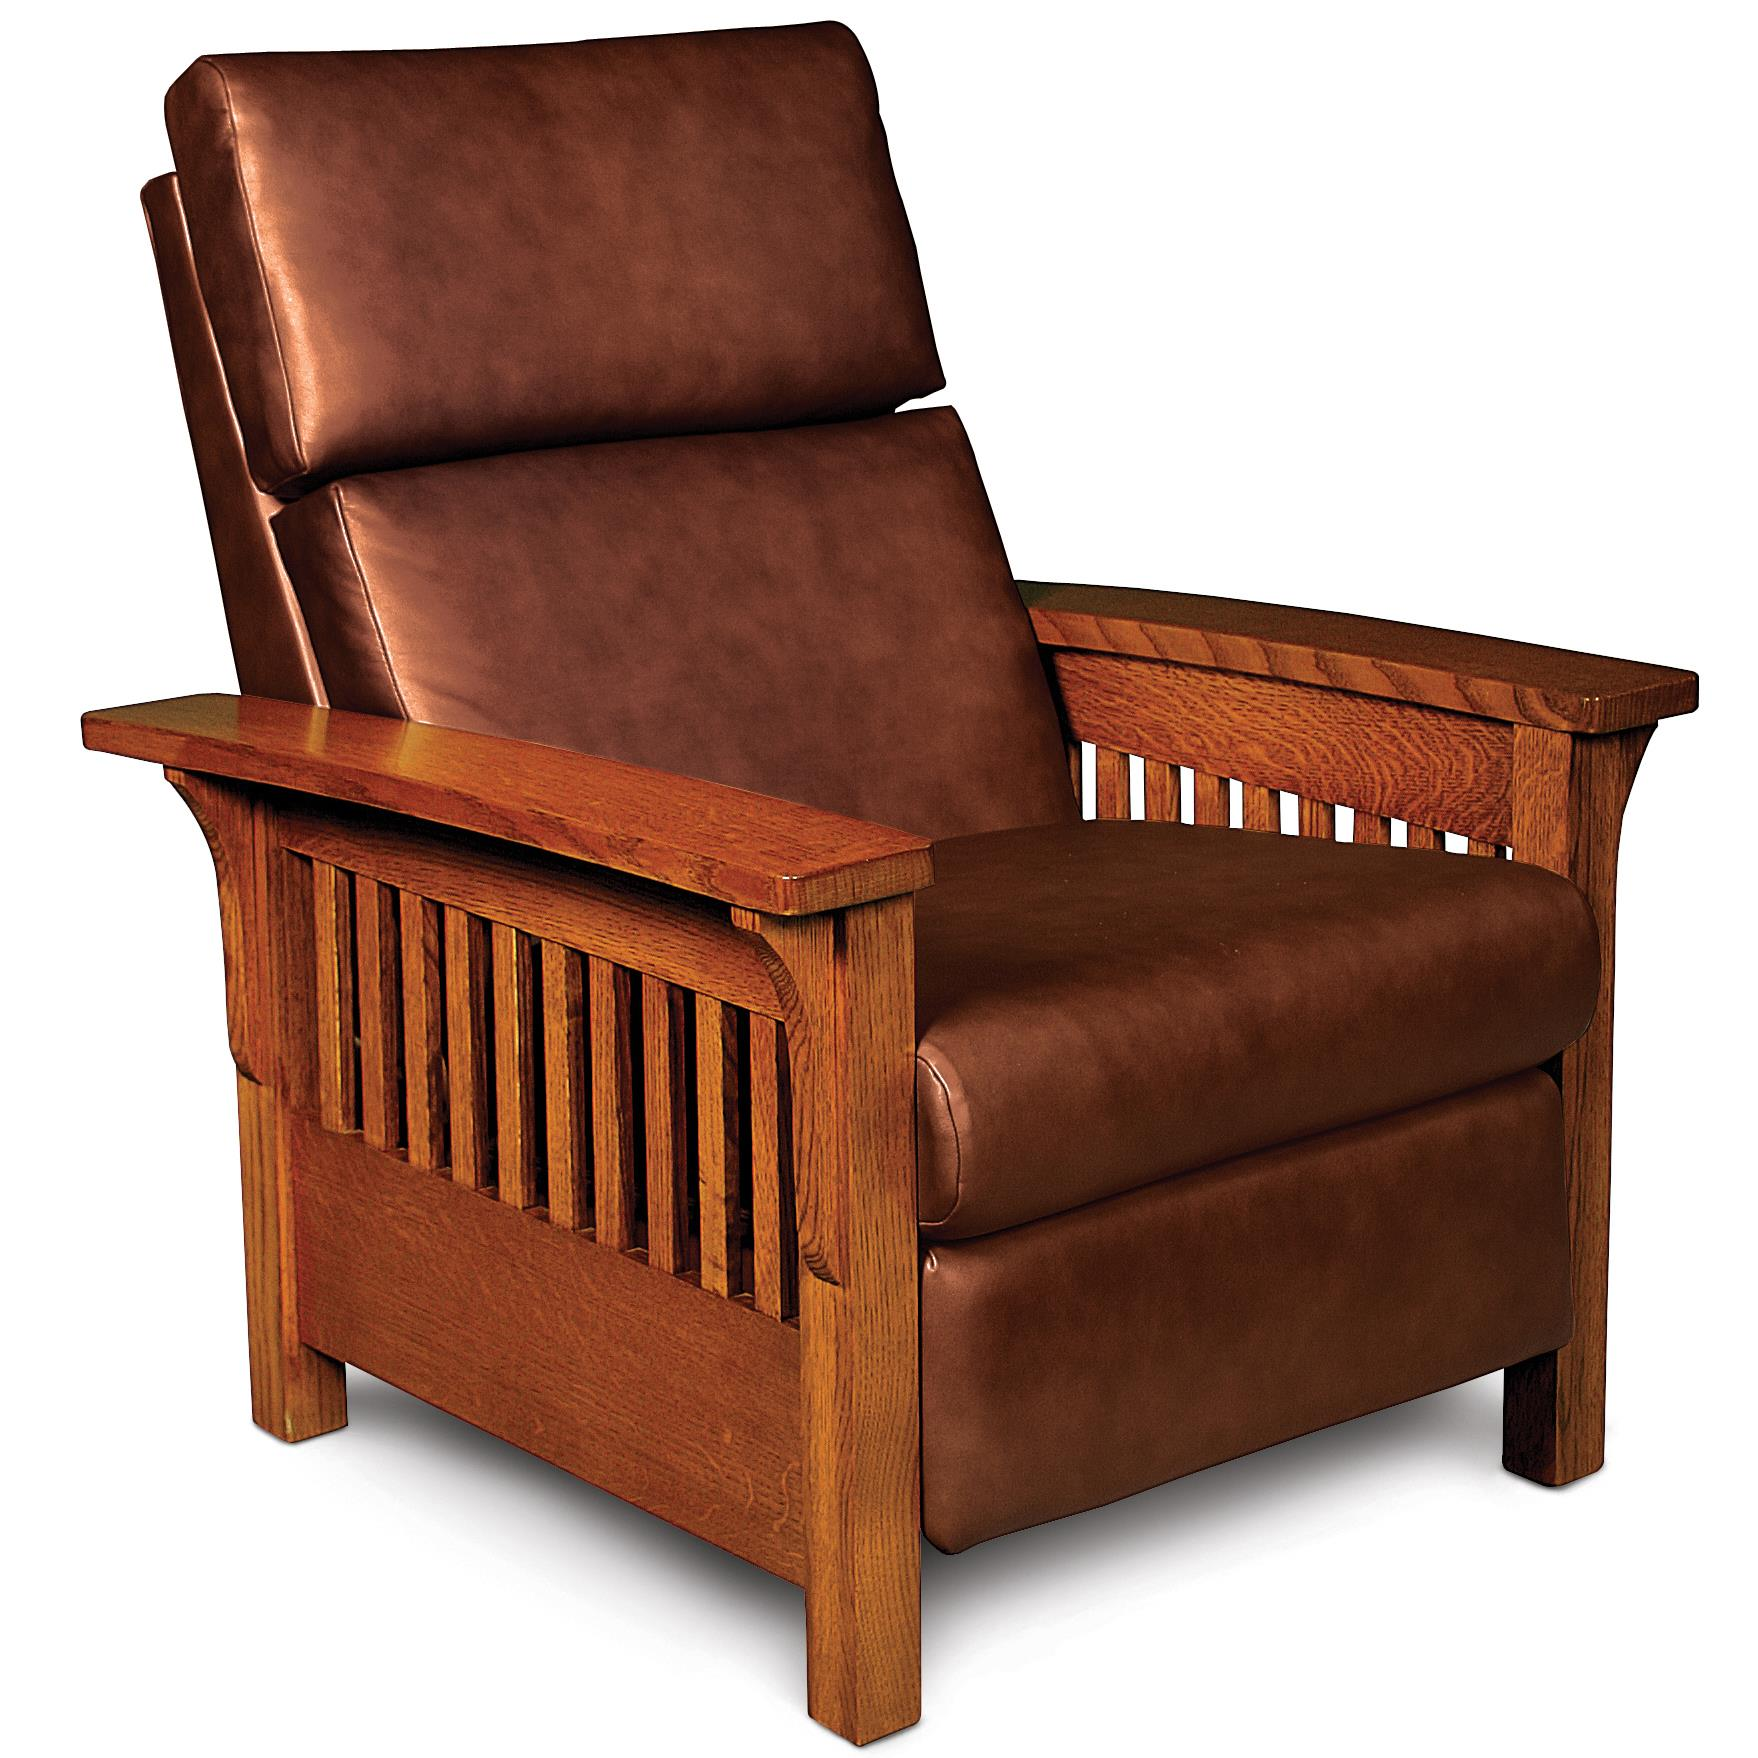 leather club chairs nebraska furniture mart patio set of 2 simply amish grand rapids xq26 ajhlr ld high leg recliner